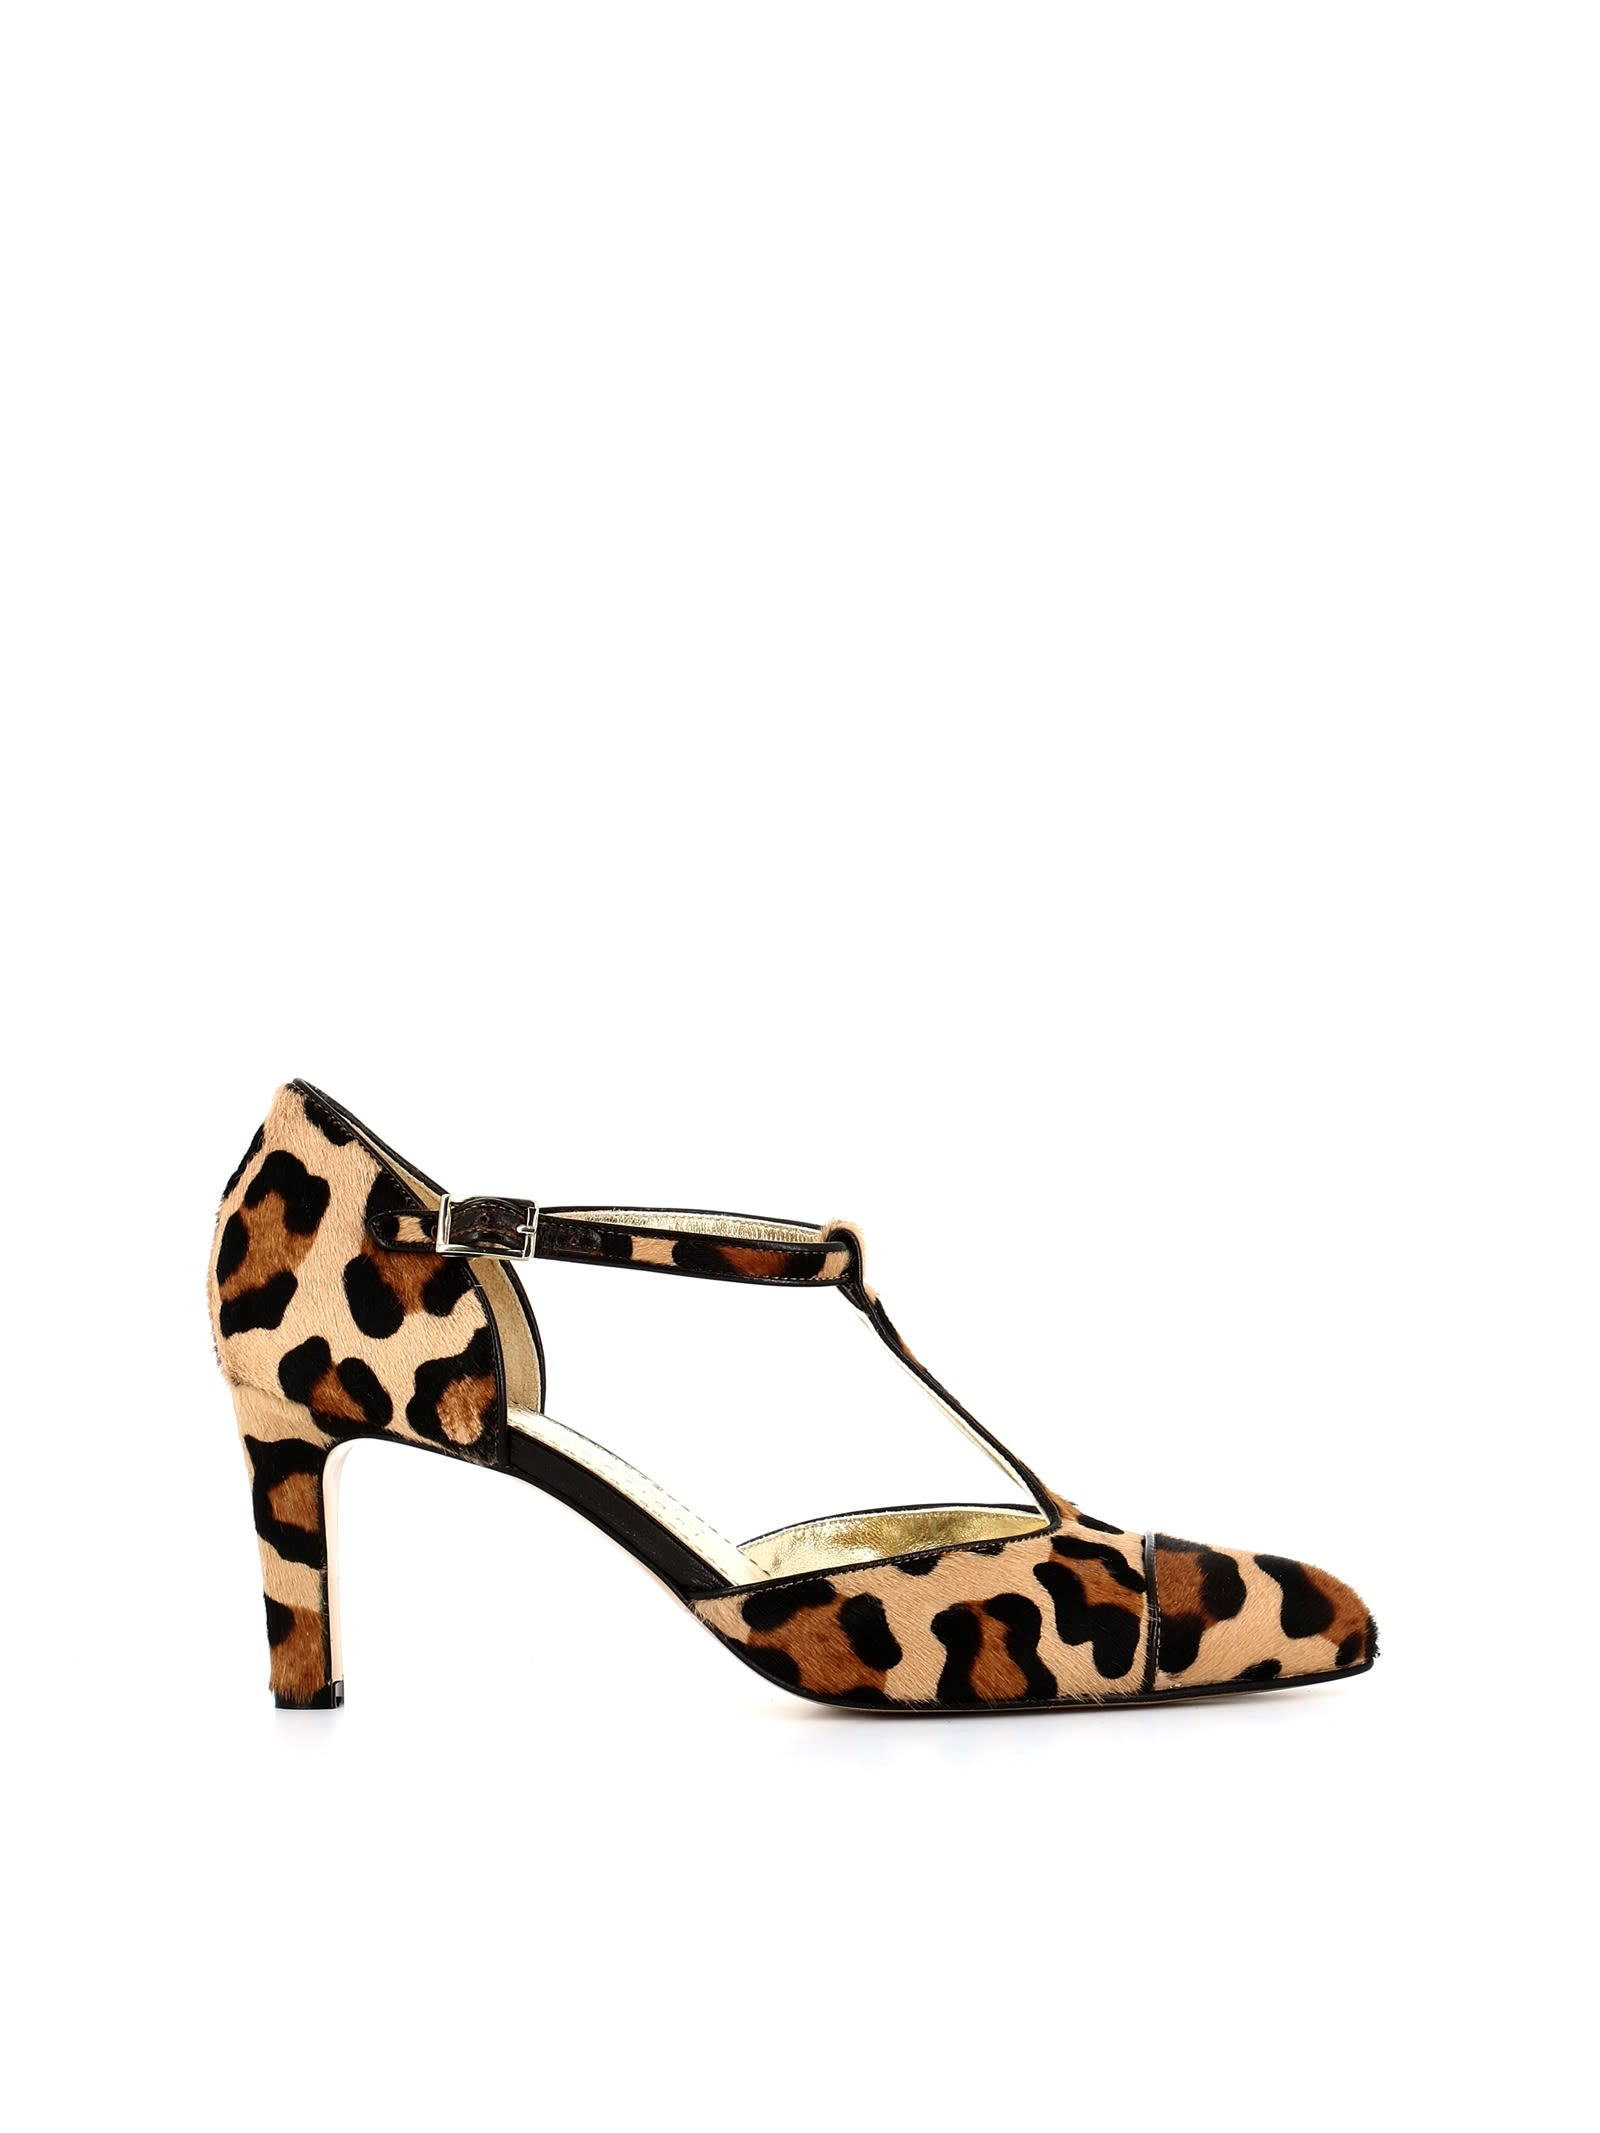 ANTONIO BARBATO Leopard Print Pumps in Brown